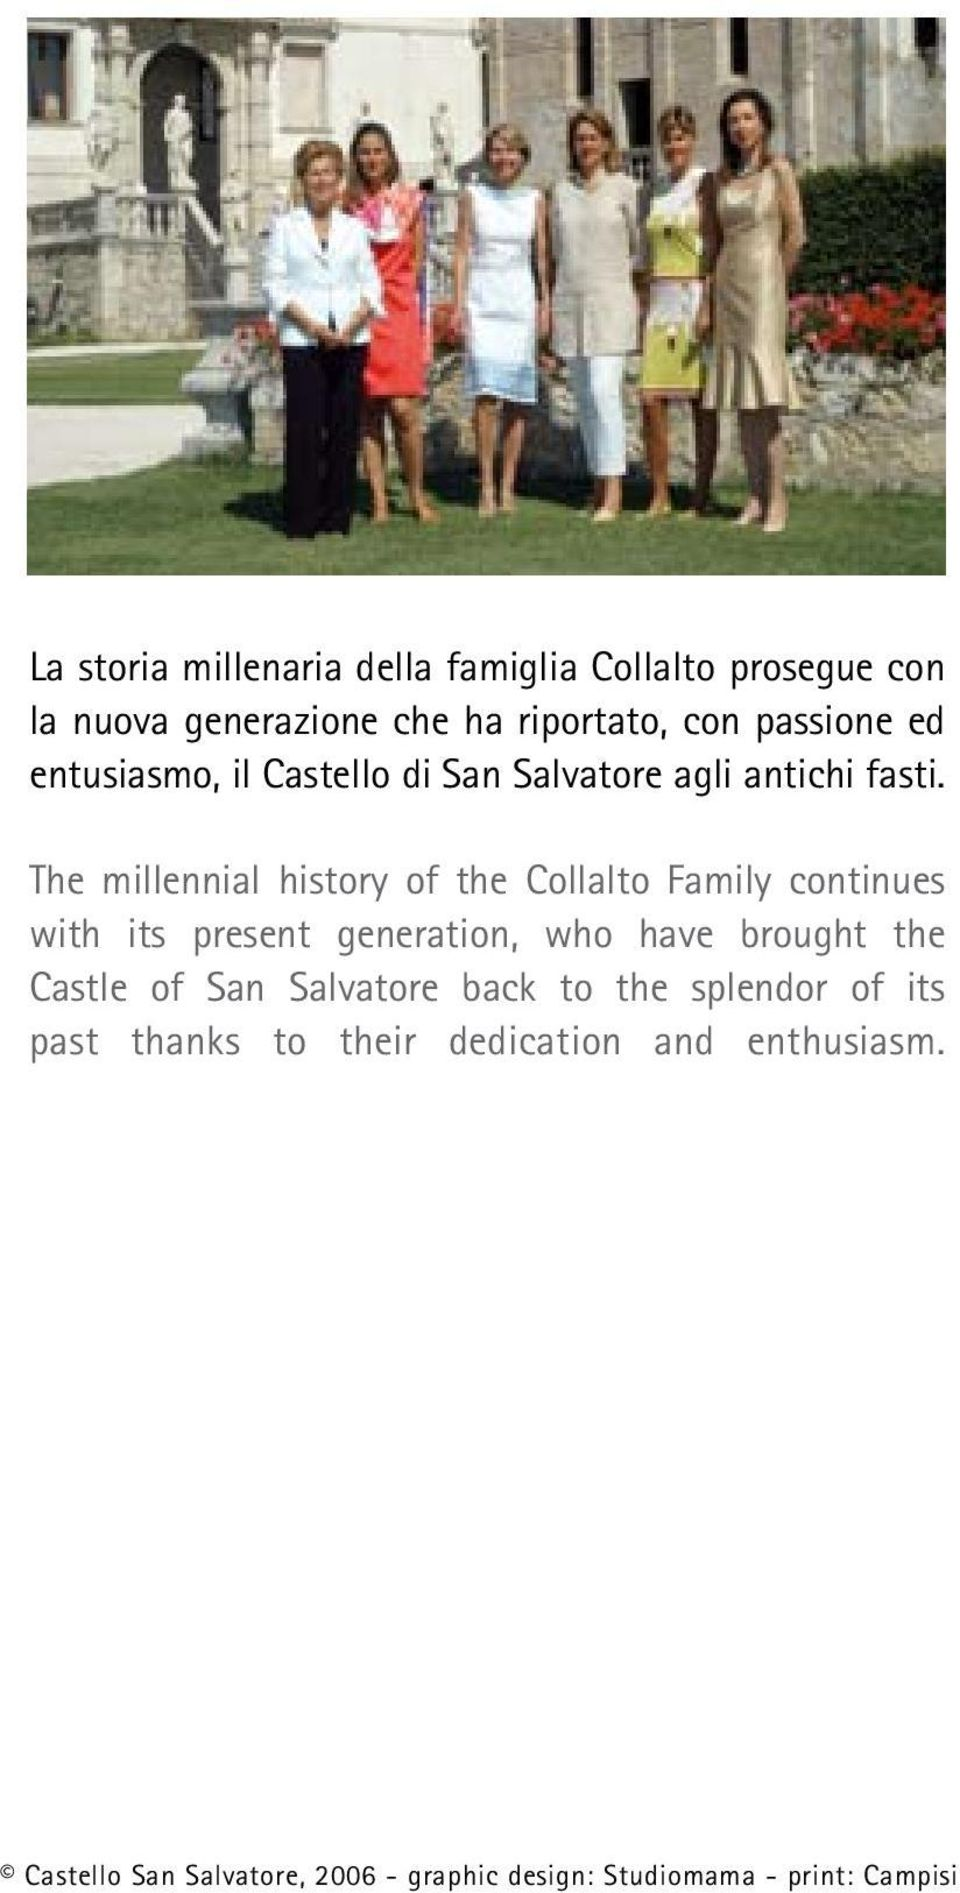 The millennial history of the Collalto Family continues with its present generation, who have brought the Castle